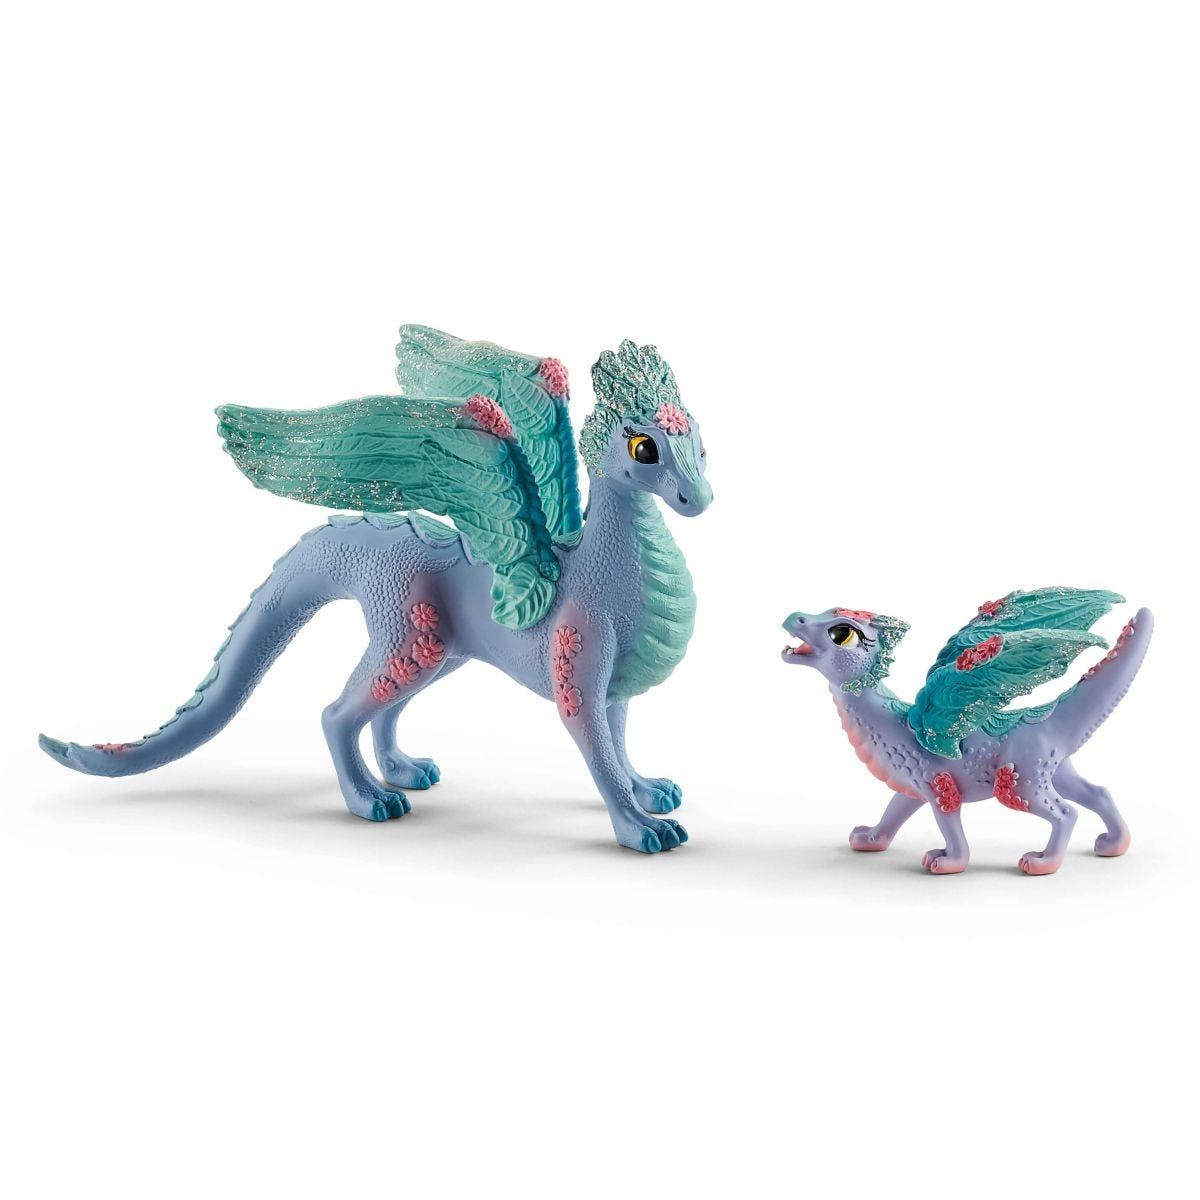 2044315-SCHLEICH-Bayala-Blossom-Dragon-Mother-and-Baby-Toy-Figures-70592